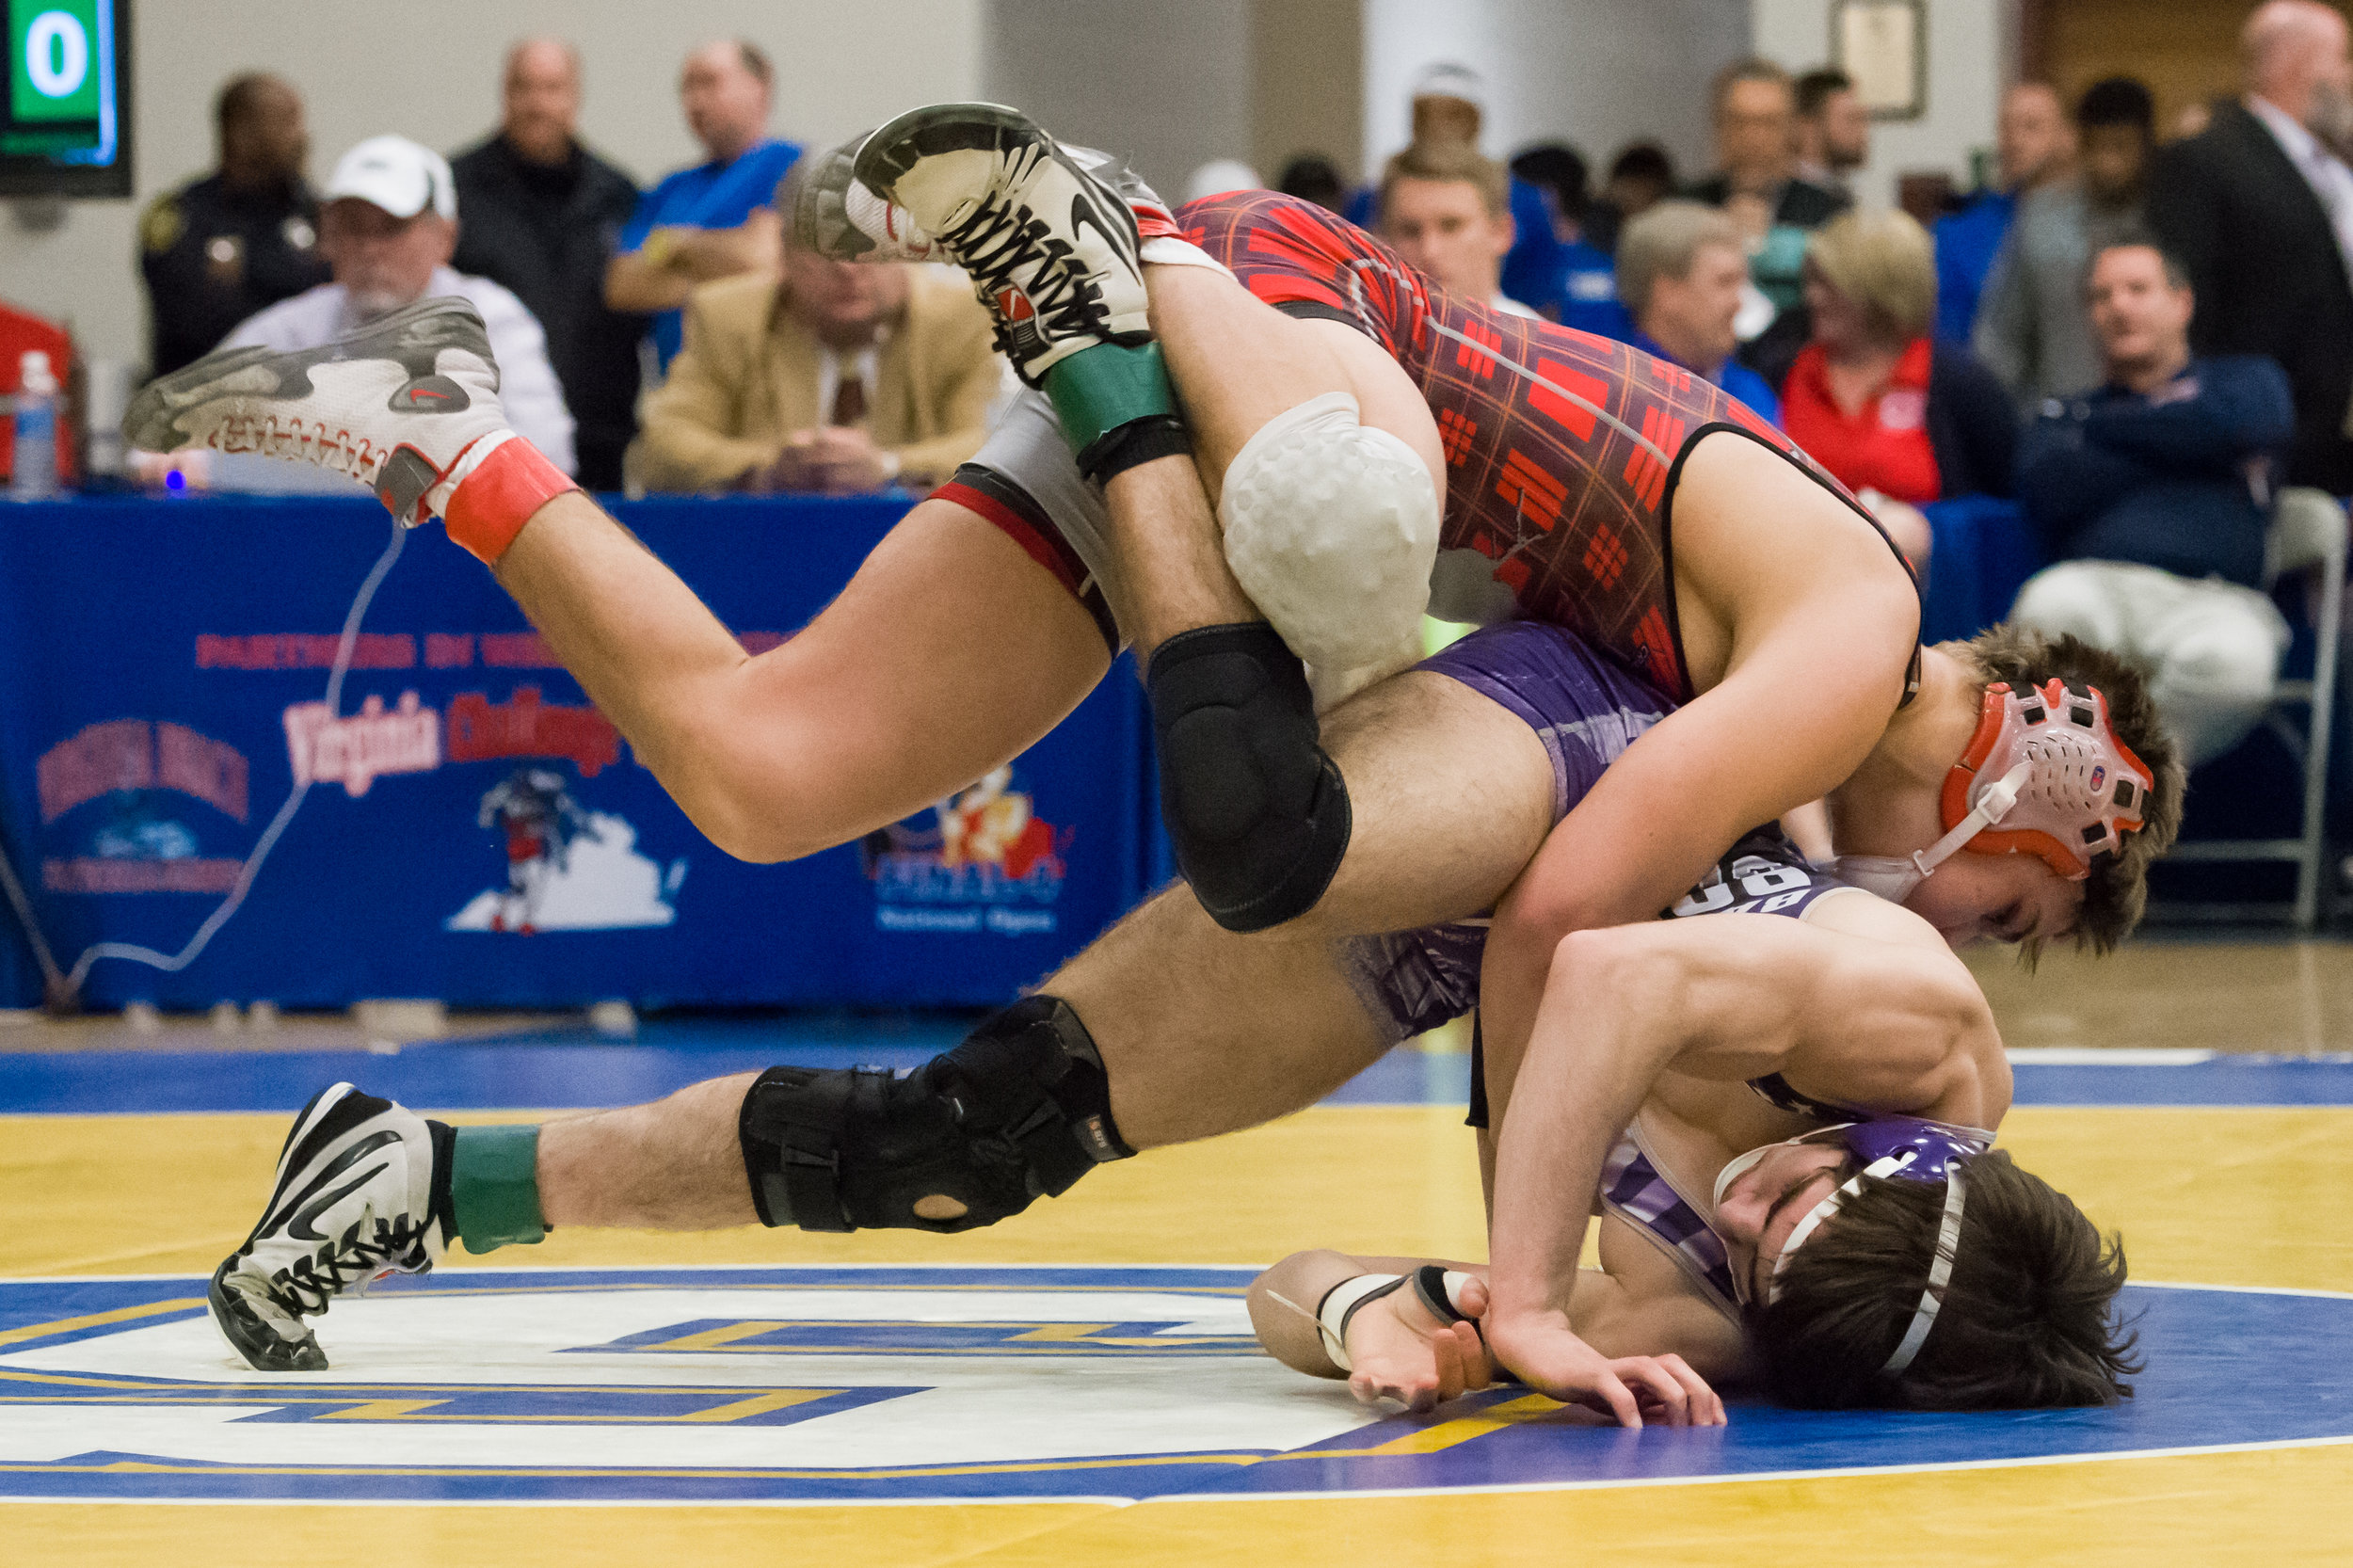 Battlefield High School's Ronald Miller (purple singlet) wrestles McLean High School's Brendan Grammes during the 152 pound VHSL 6A State Championship held at Oscar Smith High School on February 18th, 2017. Miller came in second place in the VHSL 6A State Championship.